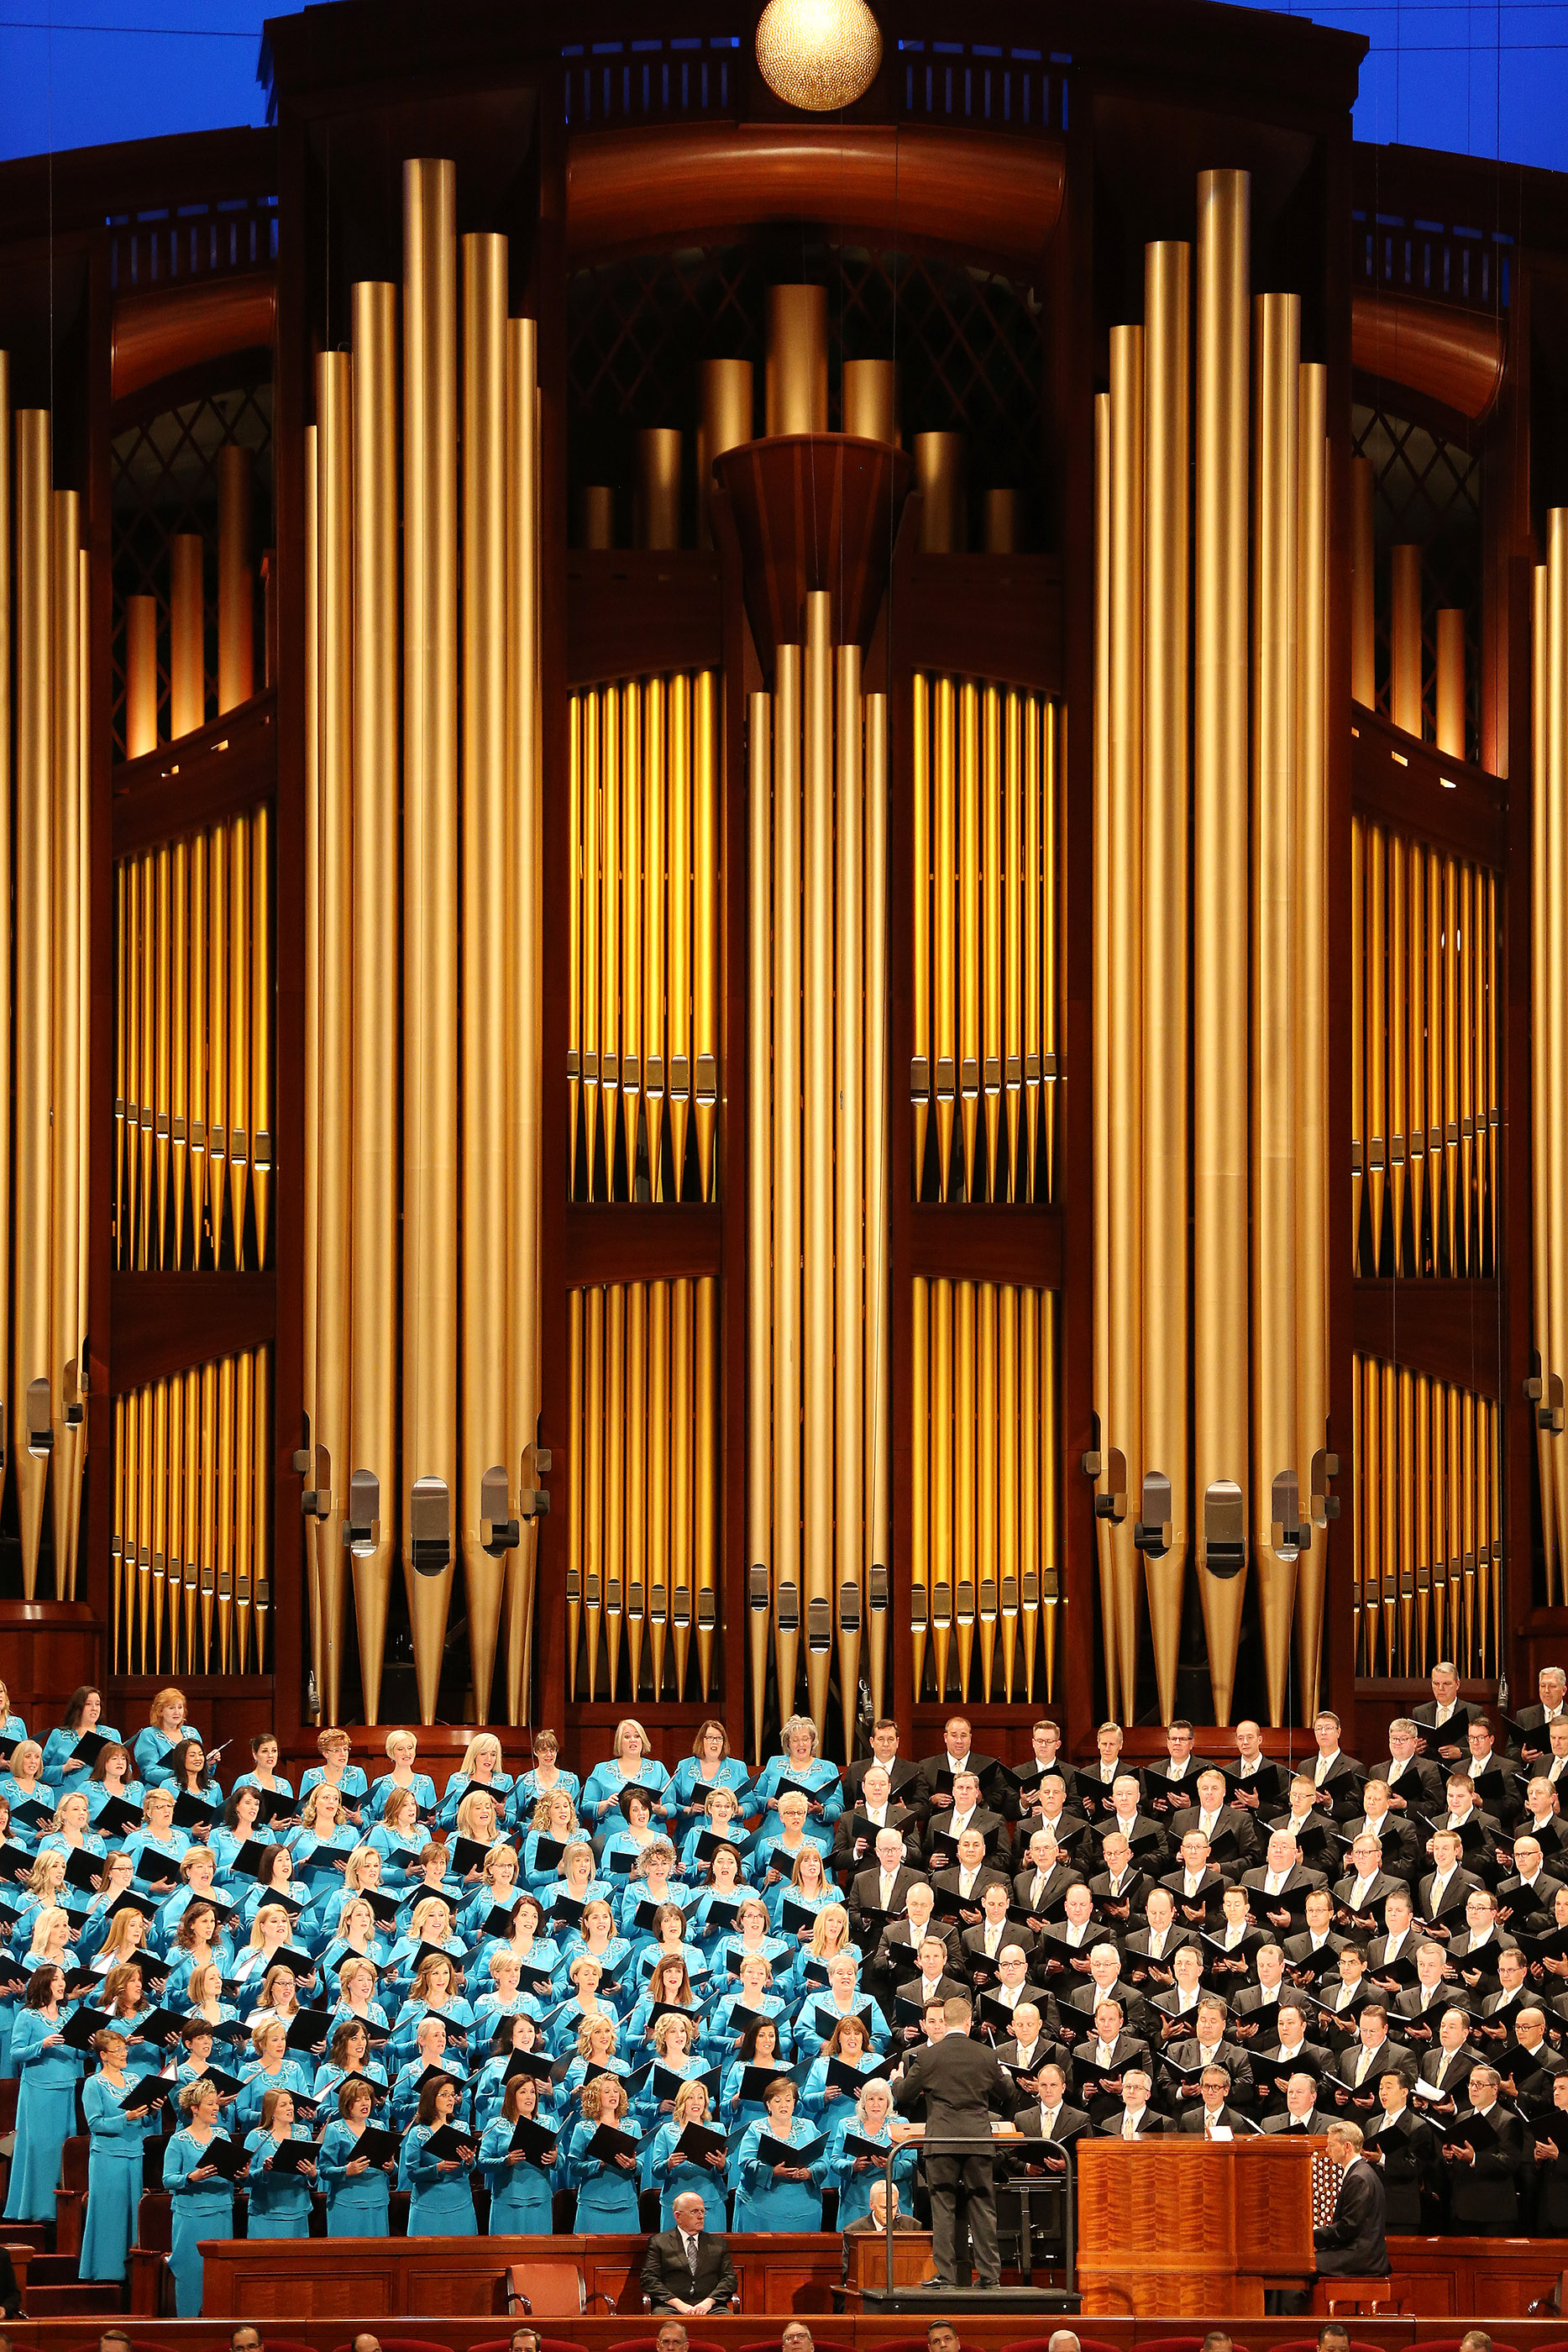 The Tabernacle Choir at Temple Square sings during the Sunday afternoon session of the 188th Semiannual General Conference of The Church of Jesus Christ of Latter-day Saints in the Conference Center in the Conference Center in downtown Salt Lake City on Sunday, Oct. 7, 2018.